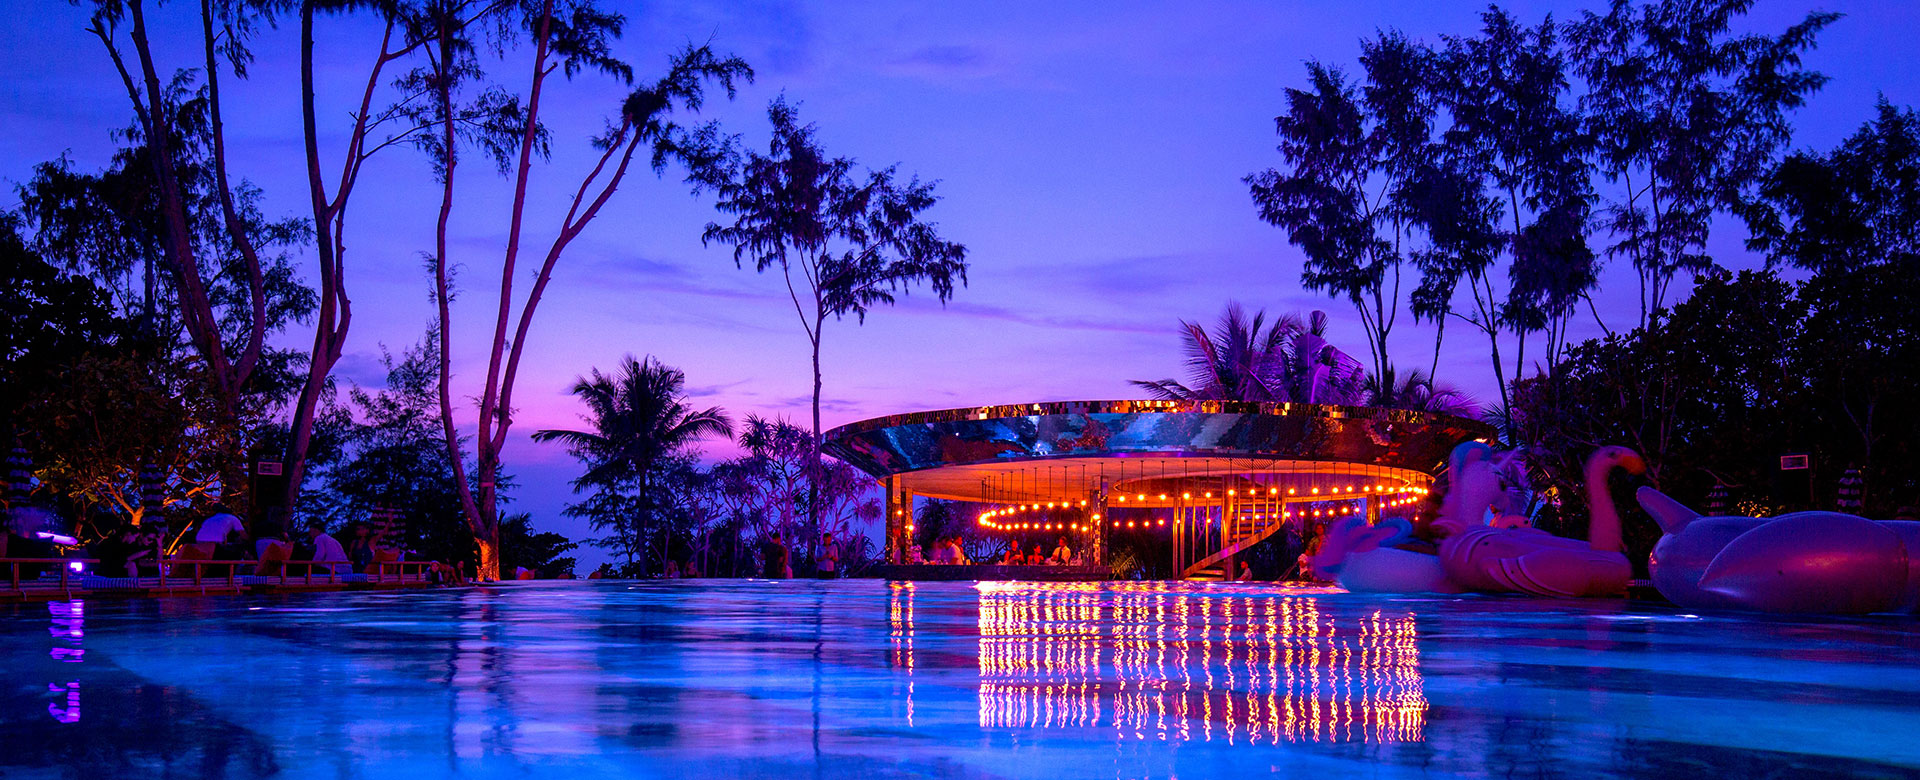 4-Over-View-Baba-Beach-Club-Phuket-Khok-Kloi-Best-Luxury-Beach-resort-Hotel